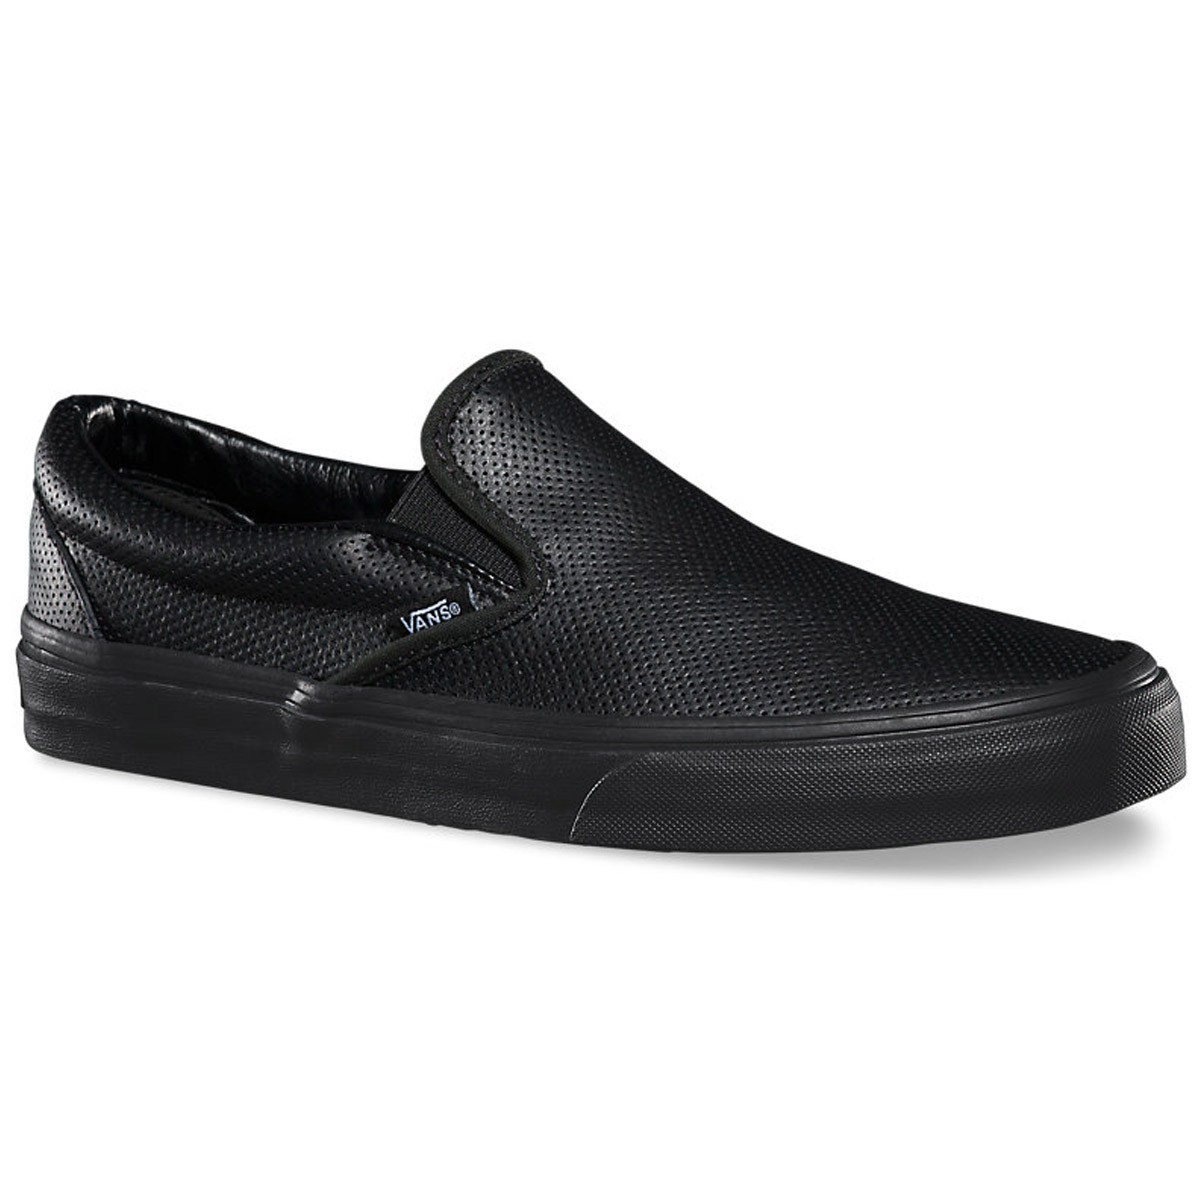 vans classic slip on perforated leather shoes